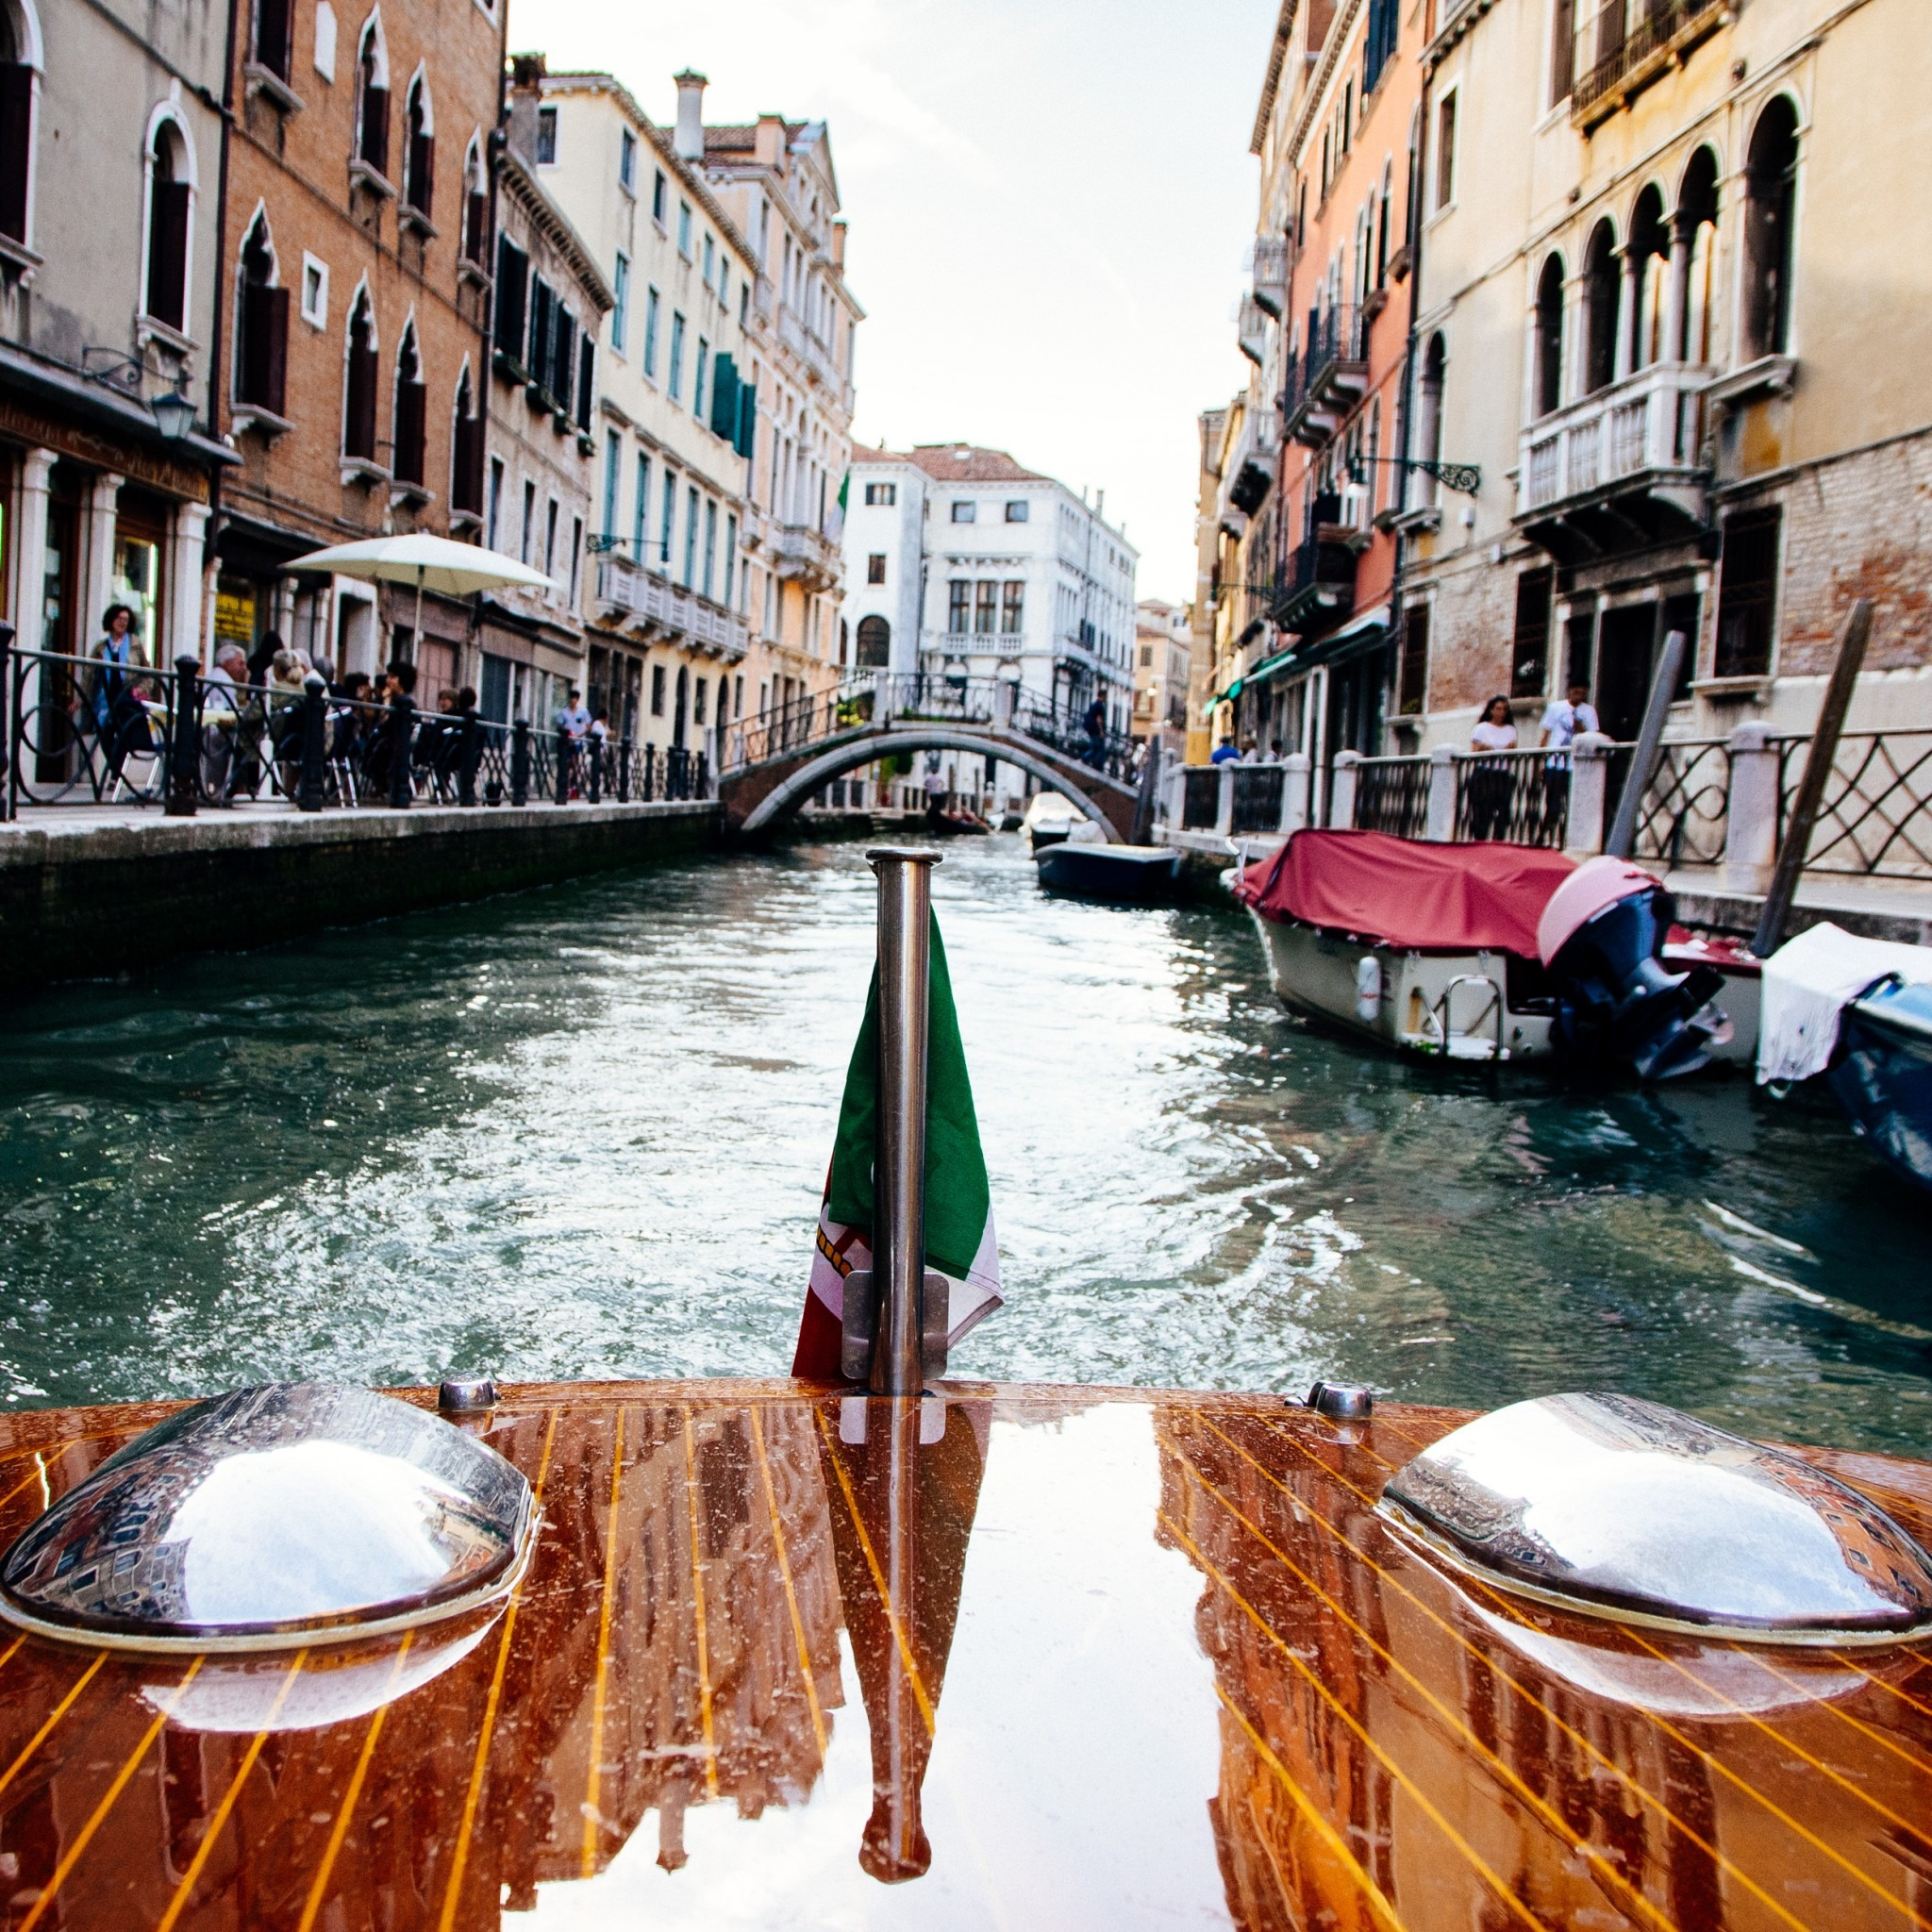 looking out the front of a boat on a canal in Venice